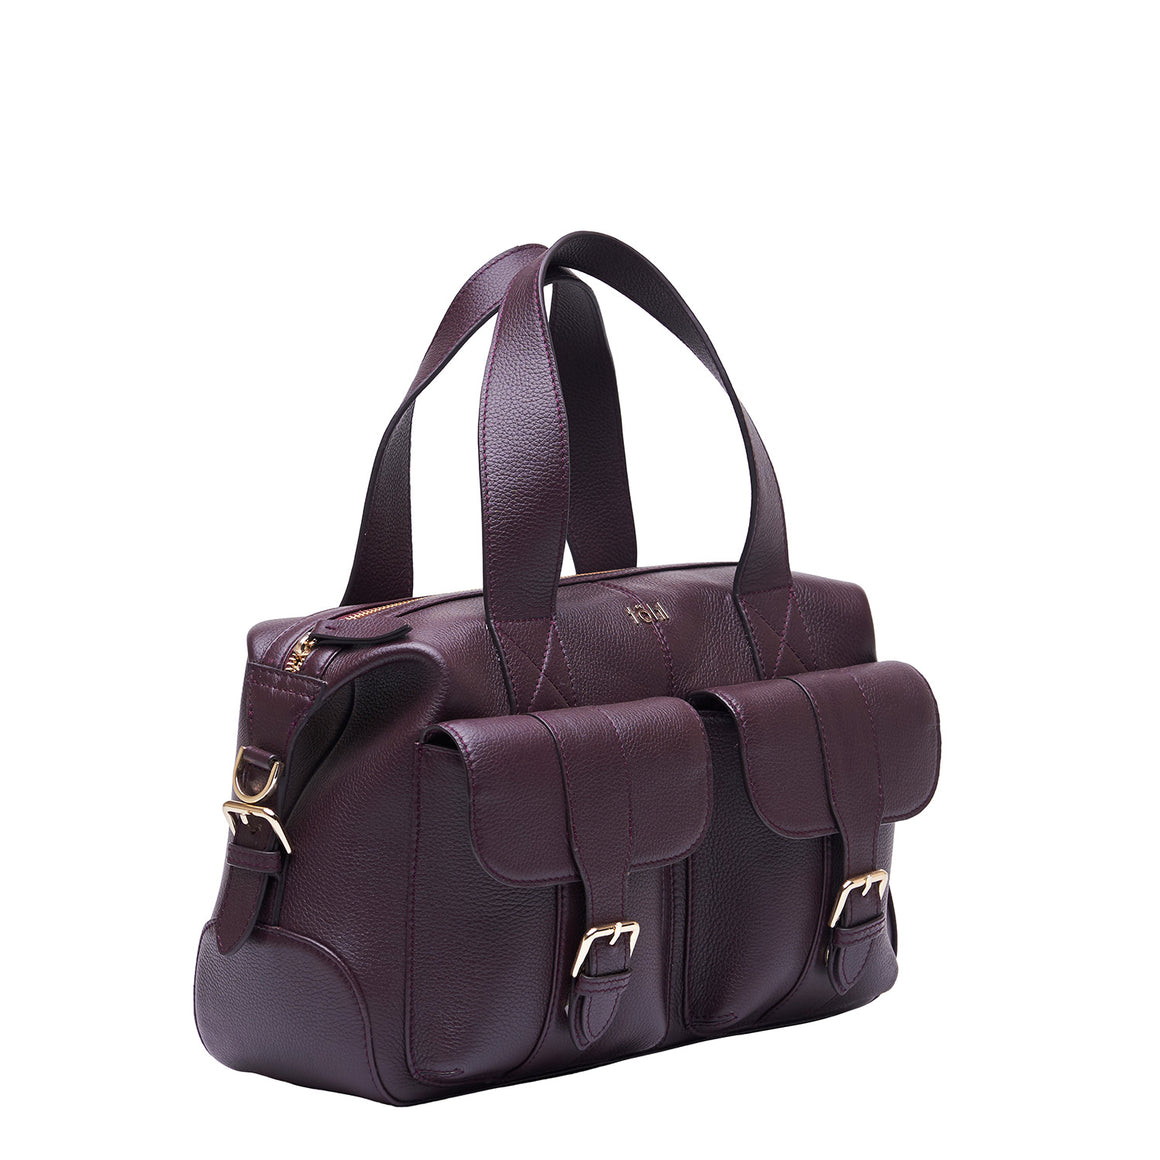 HH 0018 - TOHL PEPYS WOMEN'S HAND BAG - PLUM